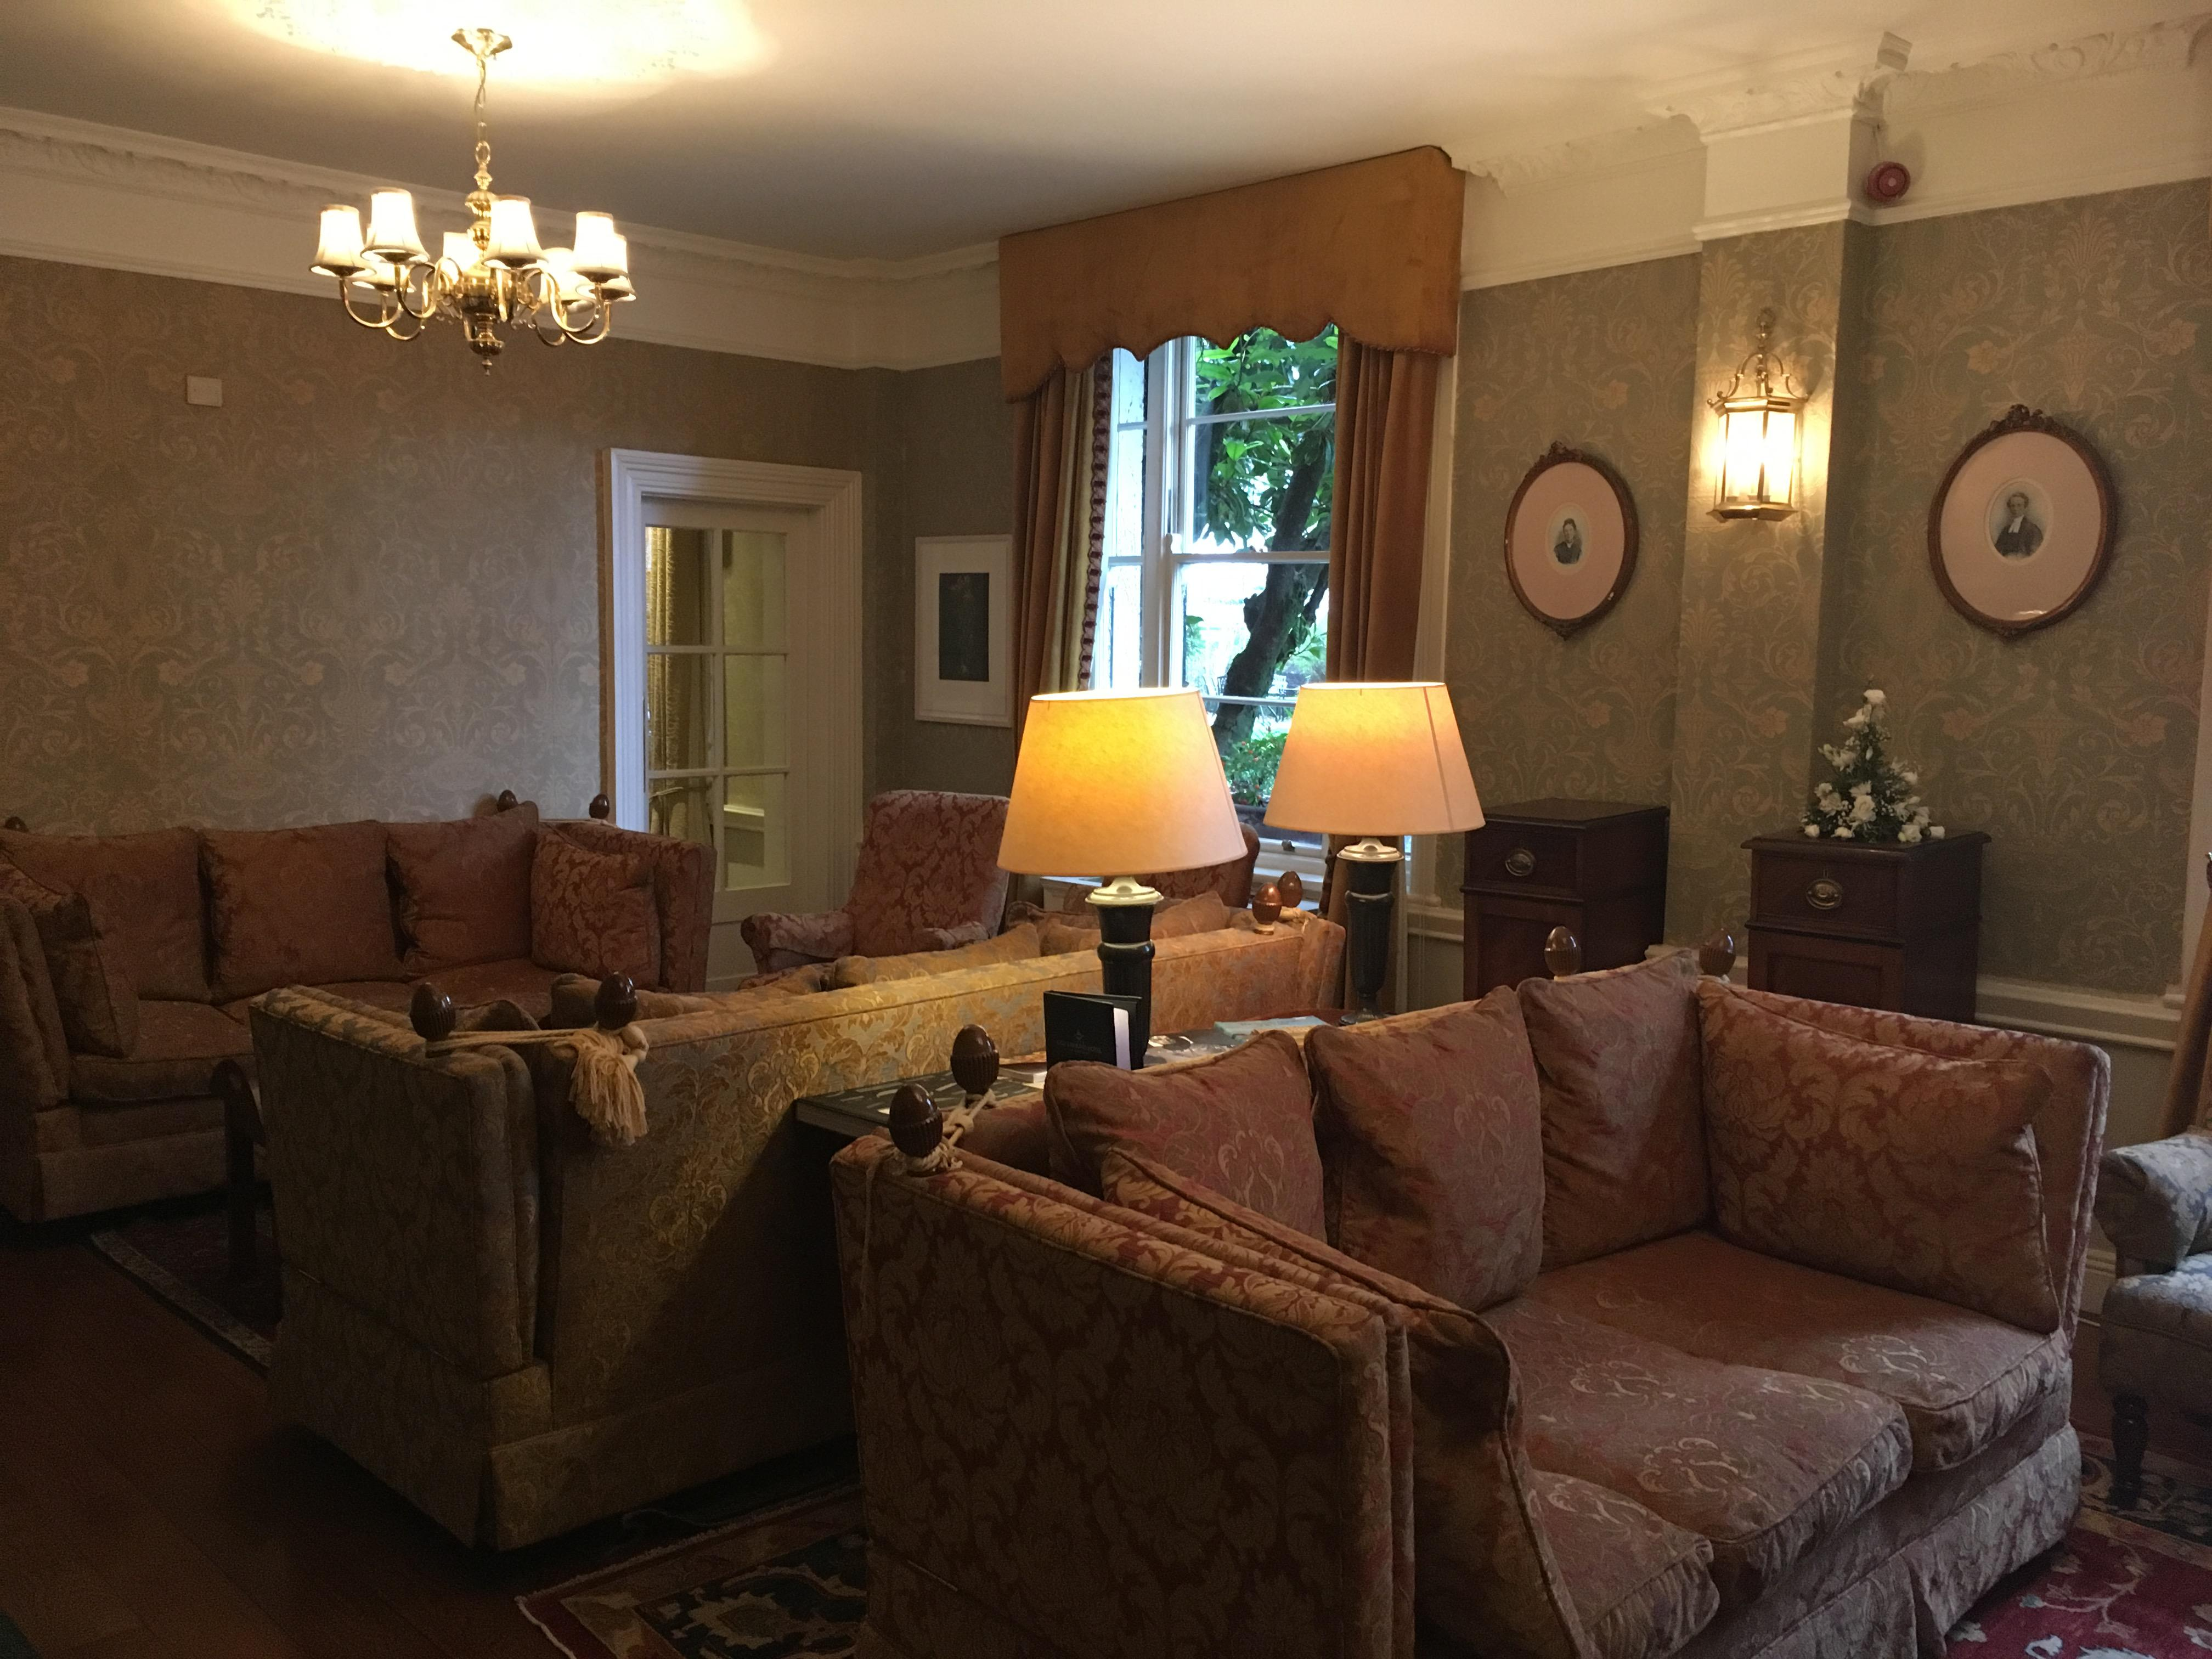 Old ground hotel in clare hotel rates reviews on orbitz we really enjoyed the old ground hotel in ennis it was in a central location for walking around town and also had a large parking lot altavistaventures Image collections